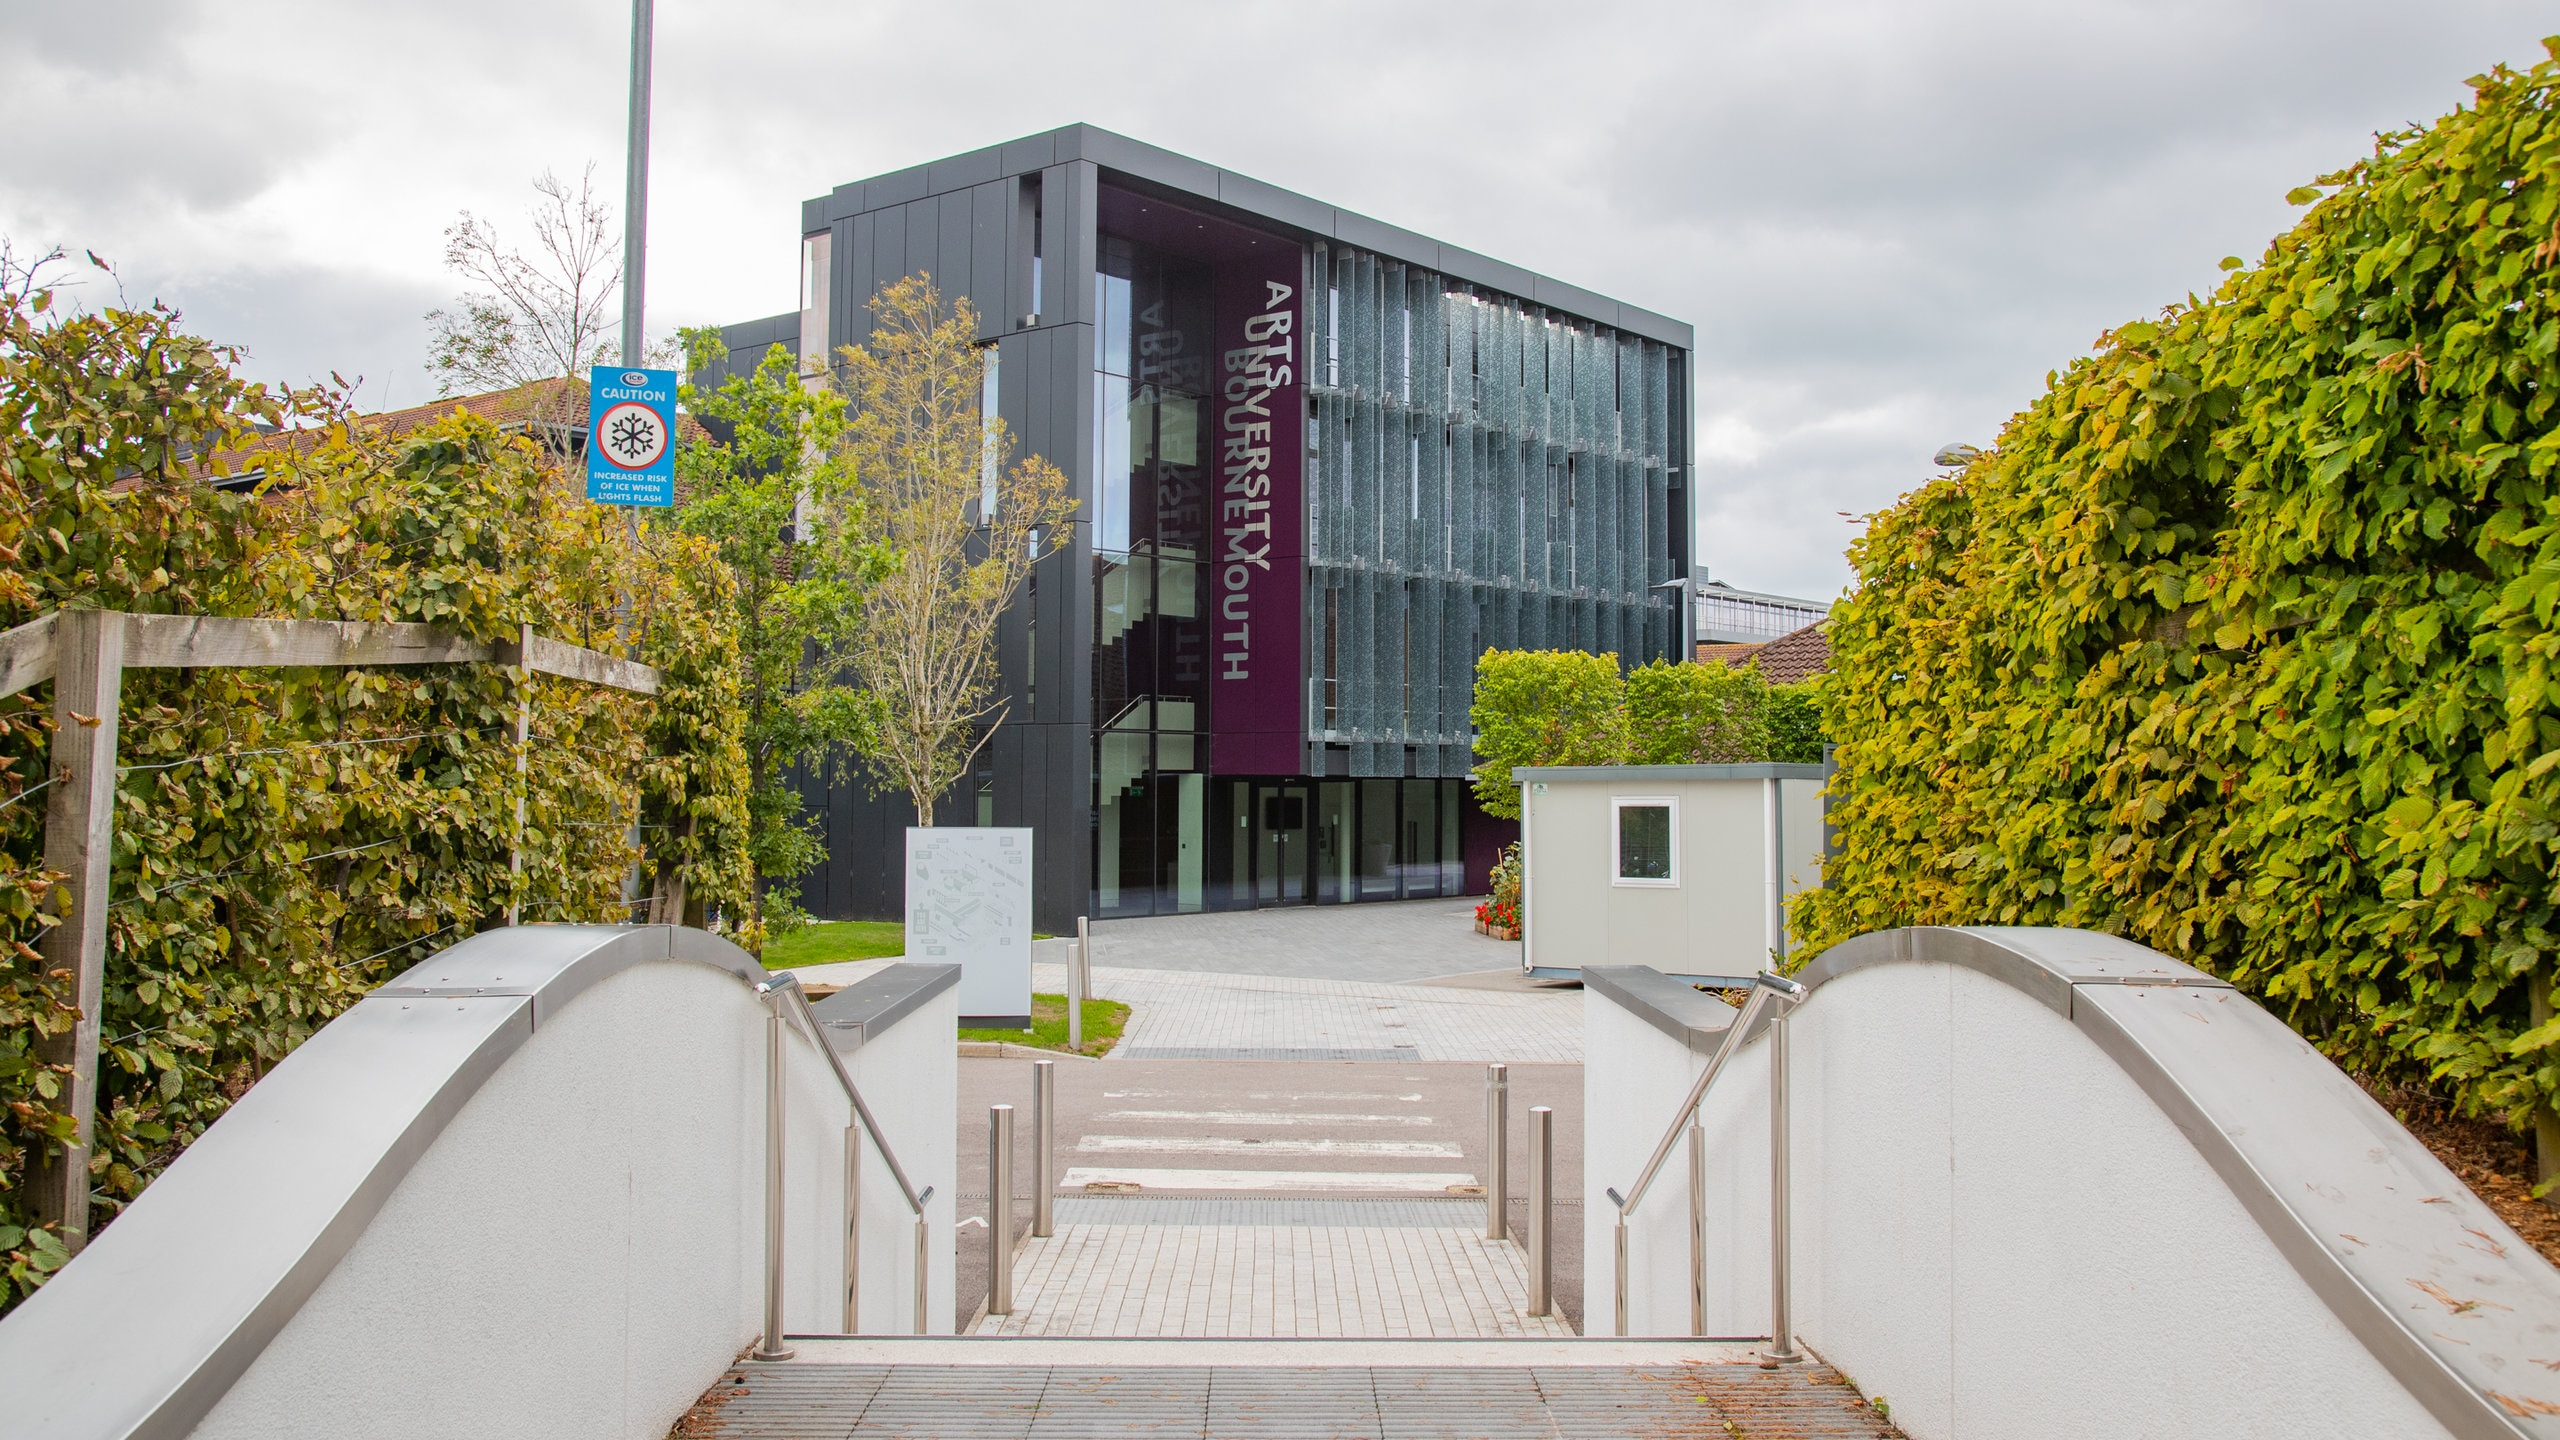 """Best known for its media programs that have trained Oscar winners, one of the U.K.'s """"new universities"""" straddles Bournemouth with two campuses."""